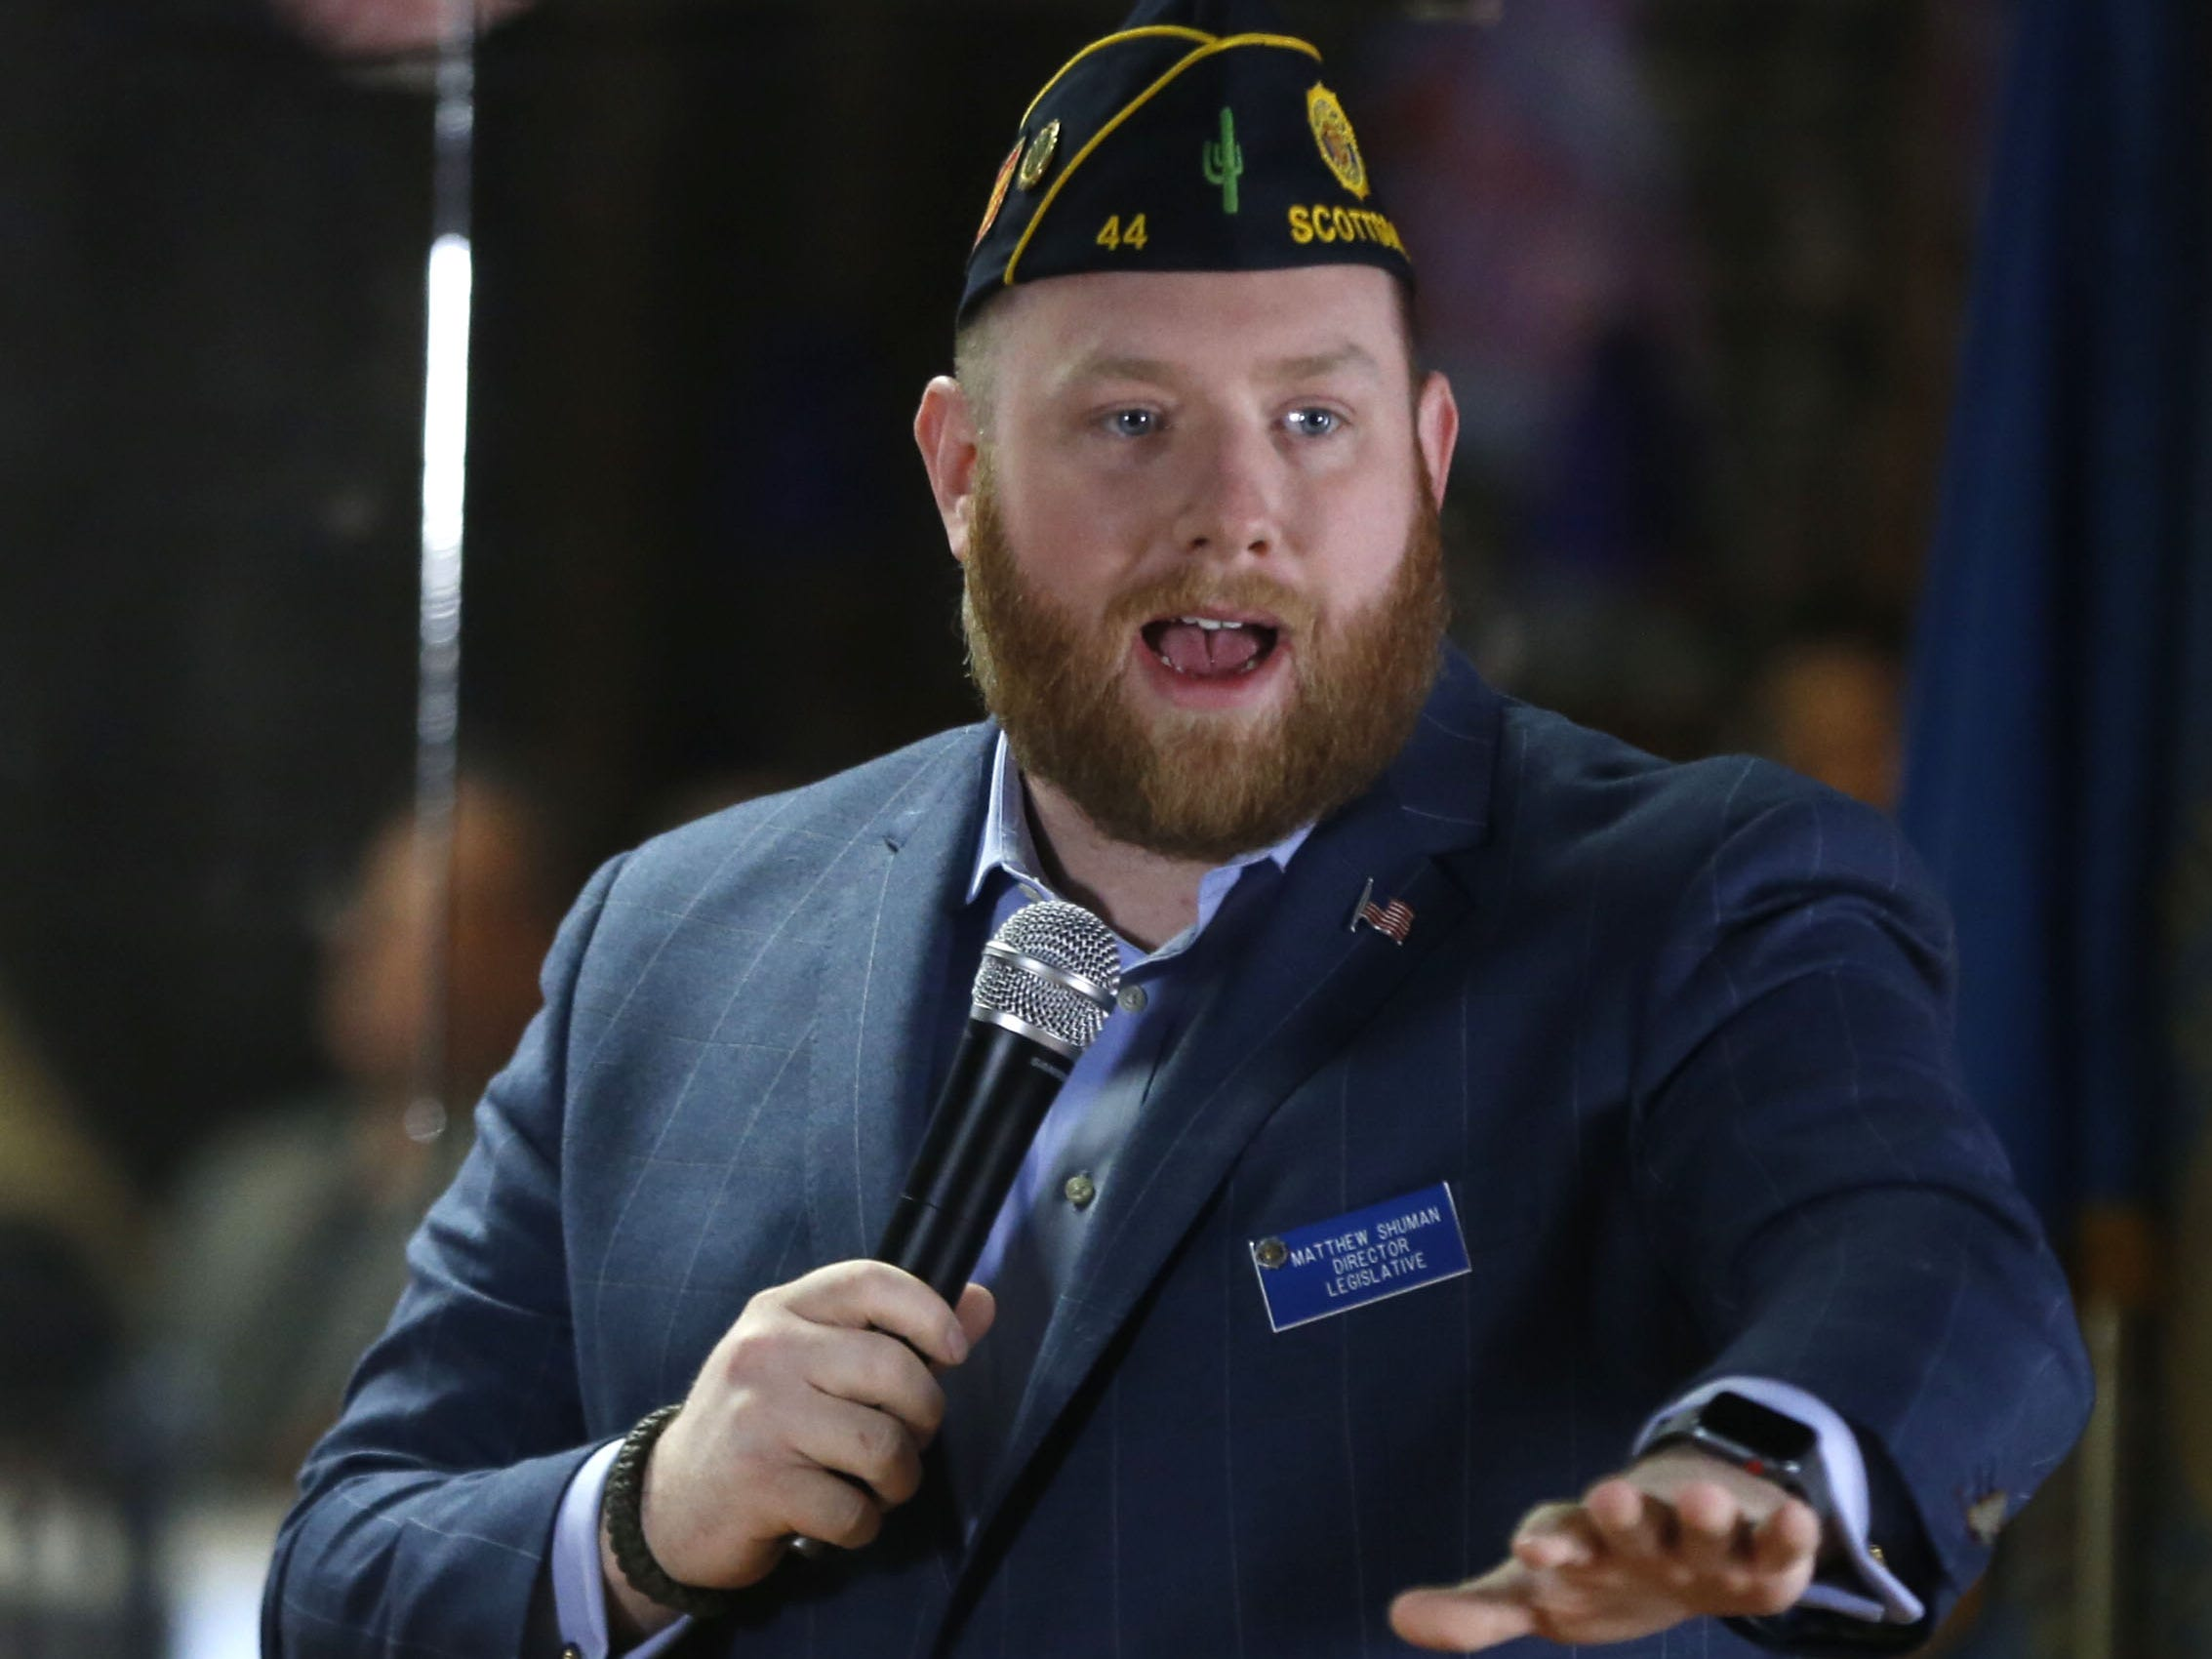 Matthew Shuman, Director of the National Legislative Division for The American Legion, speaks during 7th annual Forgotten Heroes Appreciation Breakfast at Travis L. Williams American Legion Post 65 in Phoenix on Nov. 10, 2018.